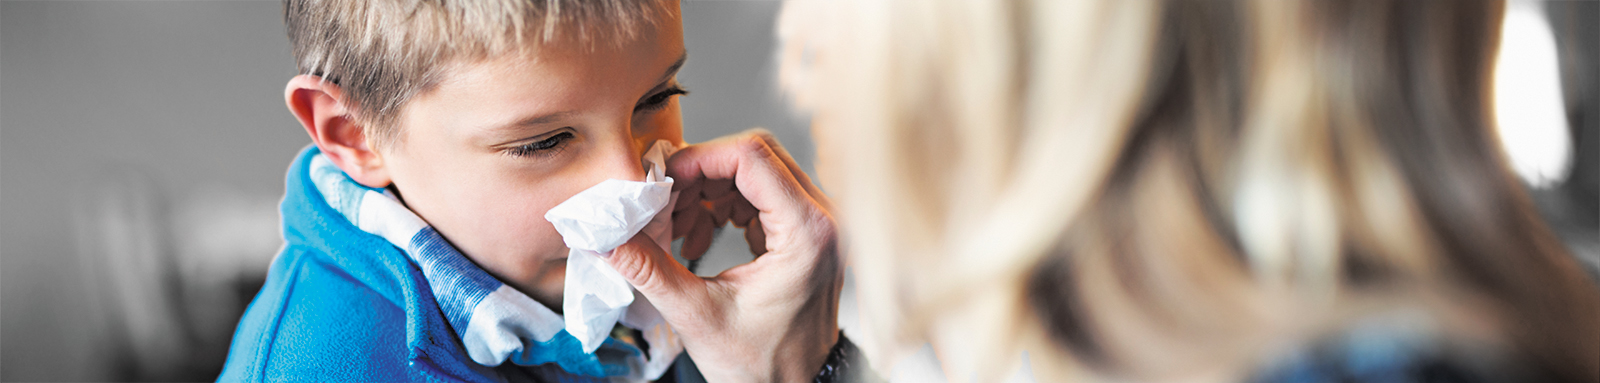 Flu cases increasing: Visitation restrictions in place